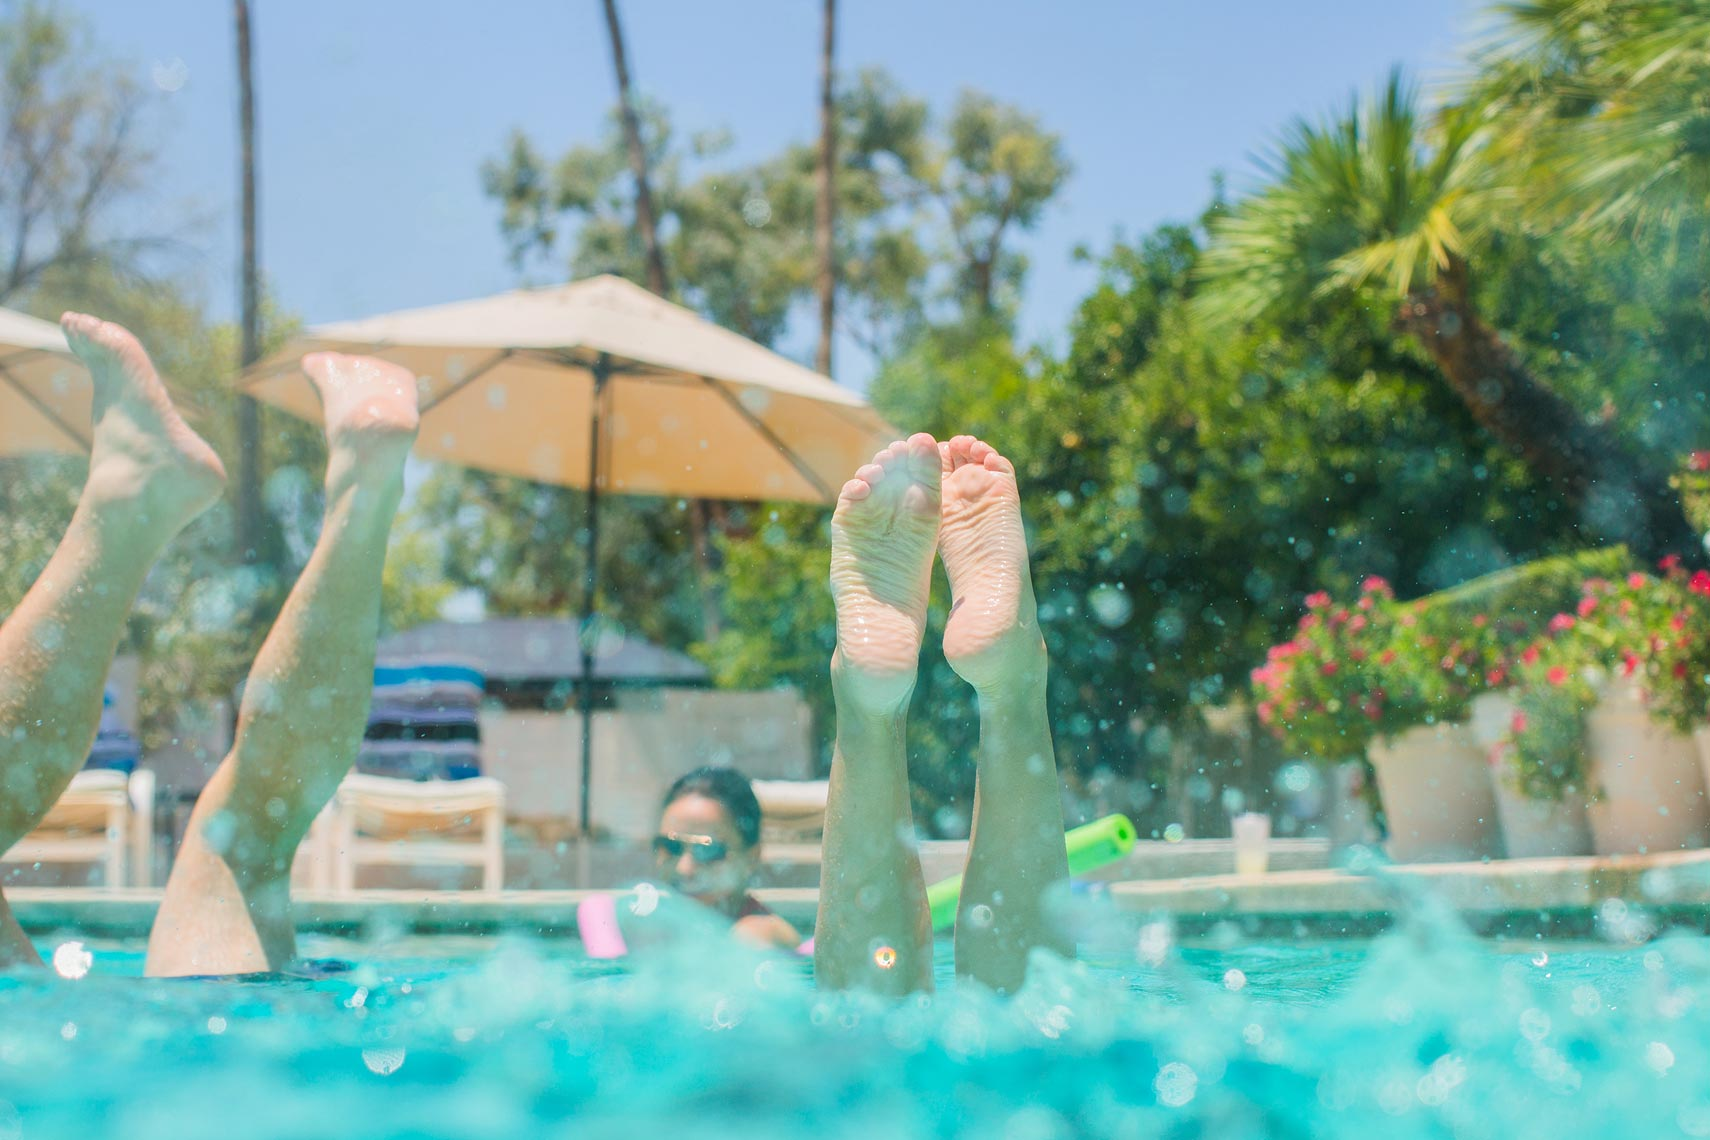 Kids swimming at a pool with their feet sticking out of the water | OneAZ | John Fedele Lifestyle Photography